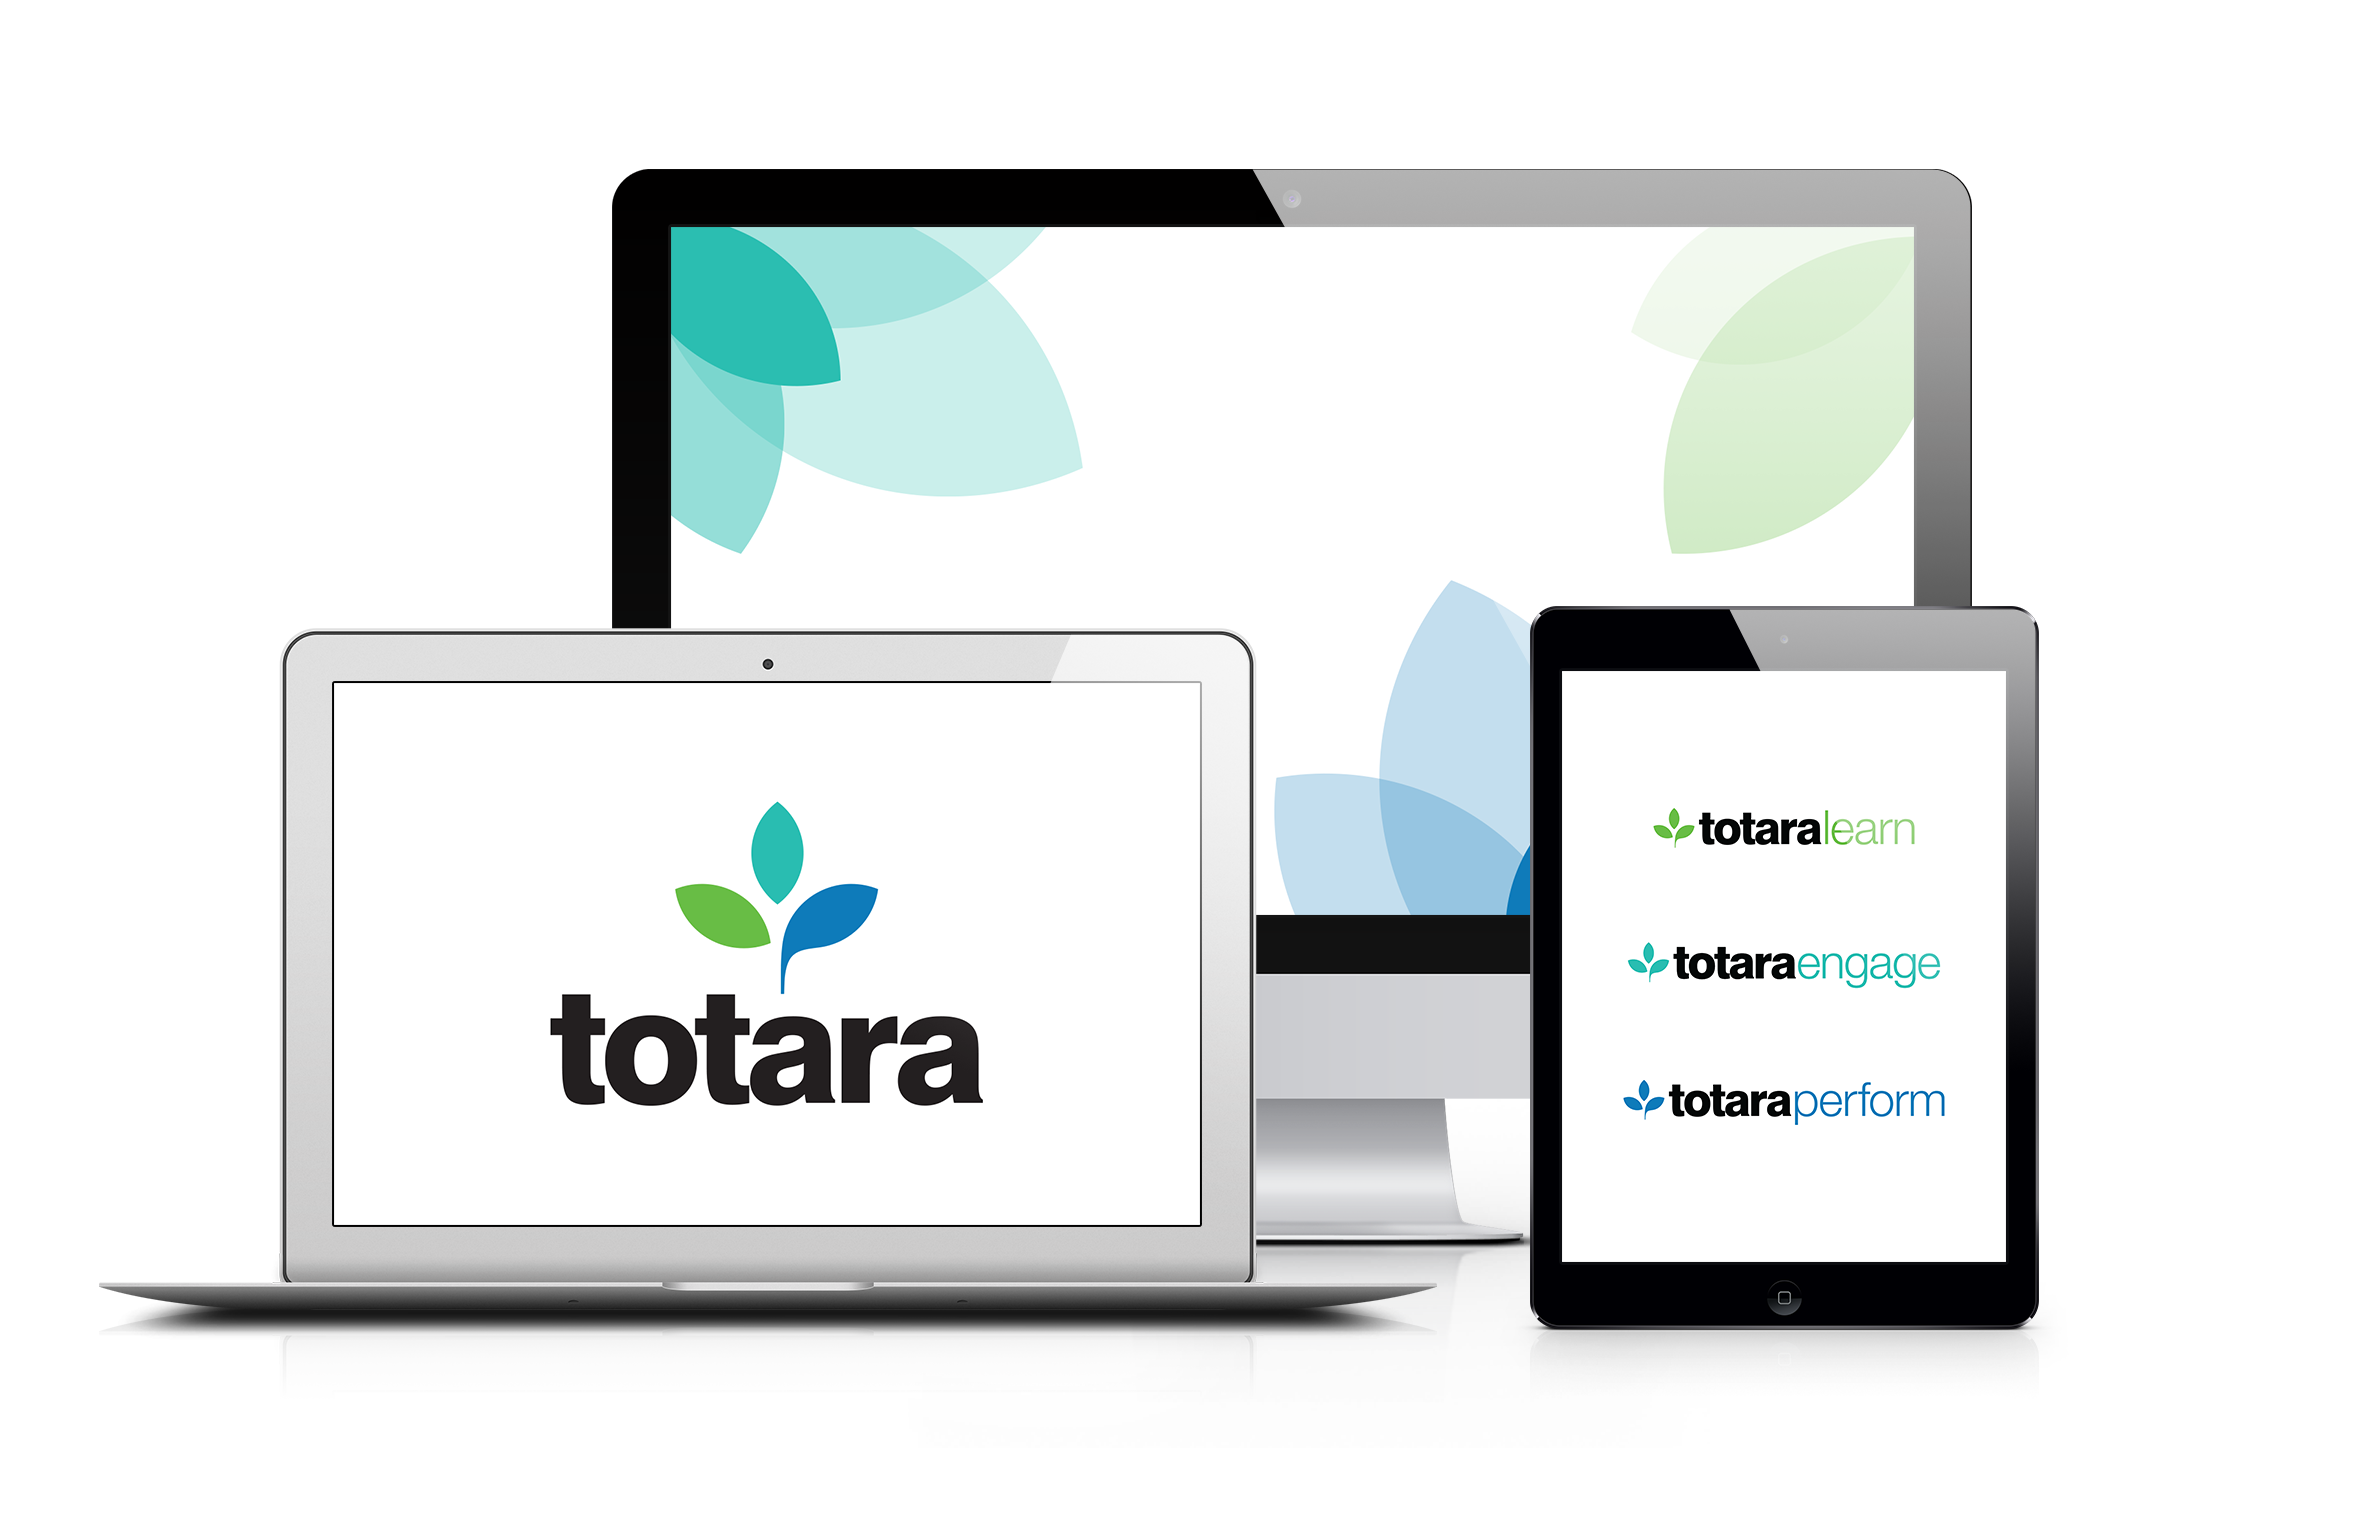 totara-txp-logoscreens